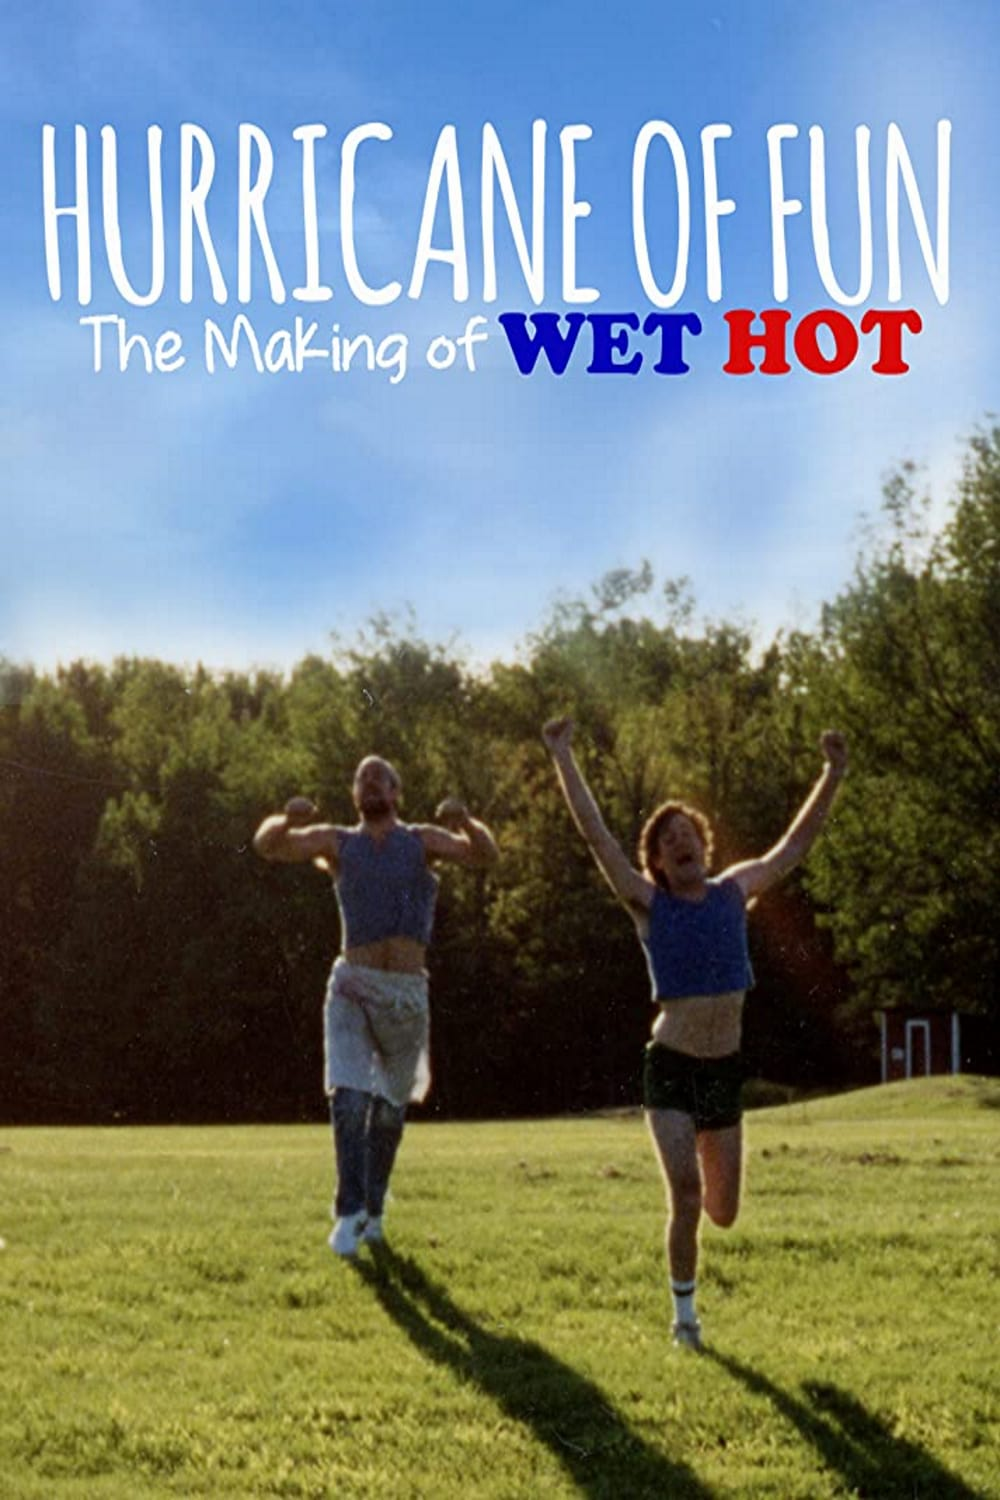 Hurricane of Fun: The Making of Wet Hot Movie Streaming Online